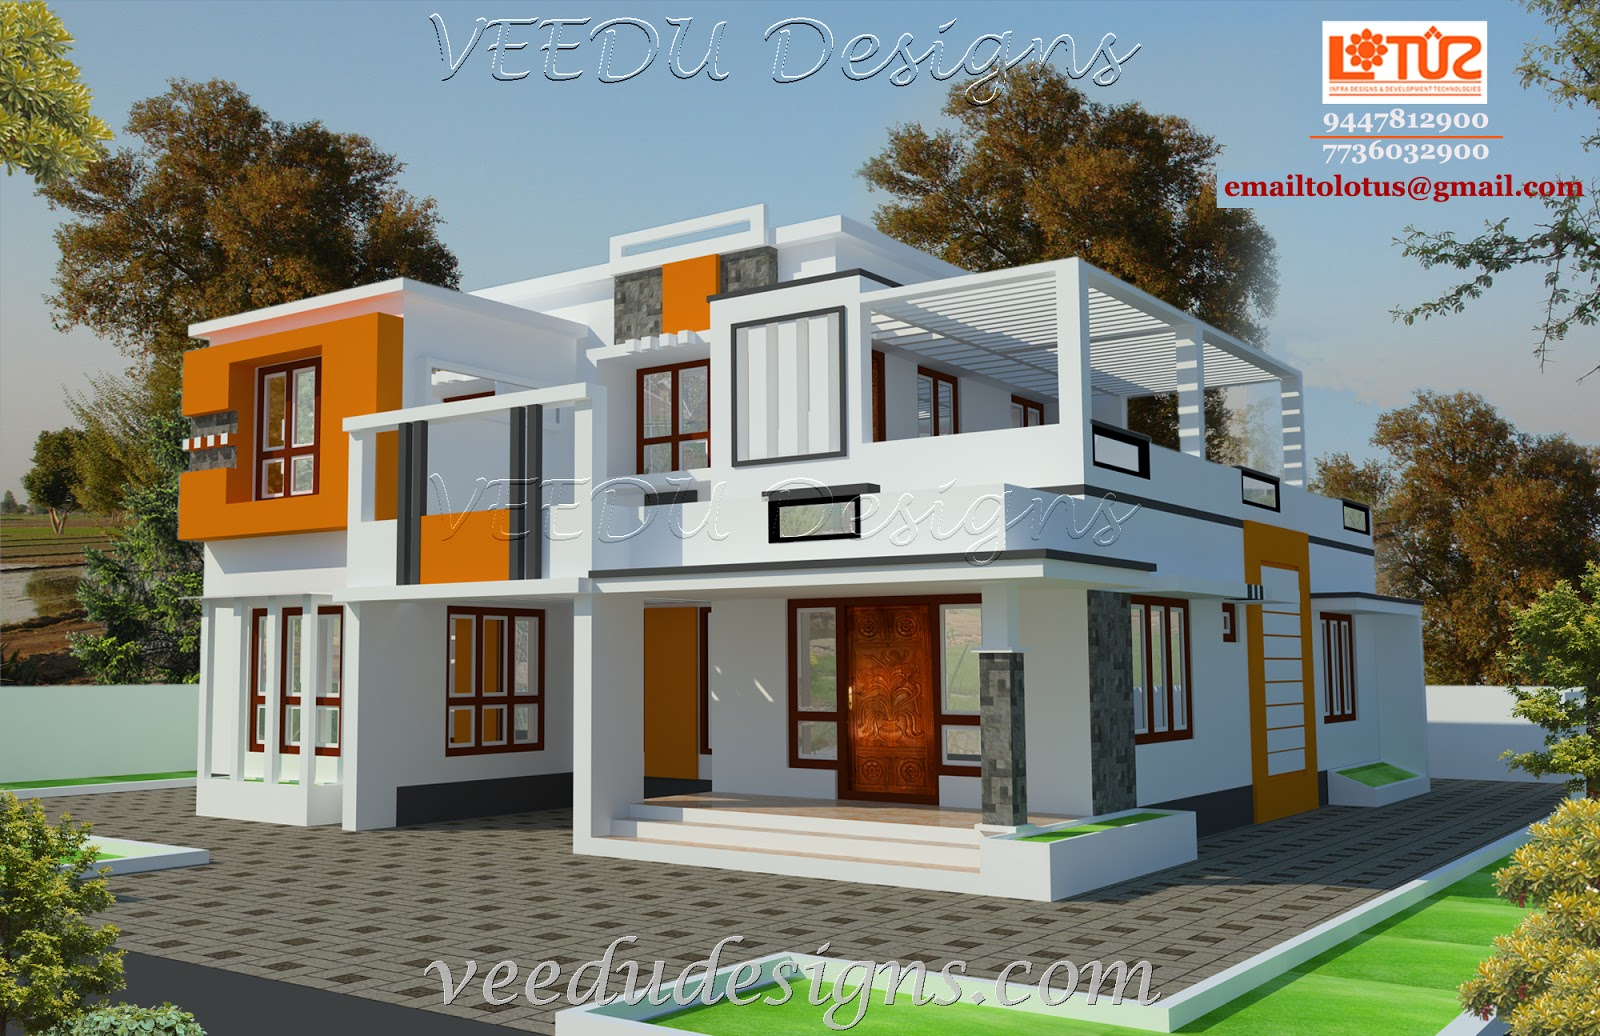 Veedu designs kerala home designs for In home design